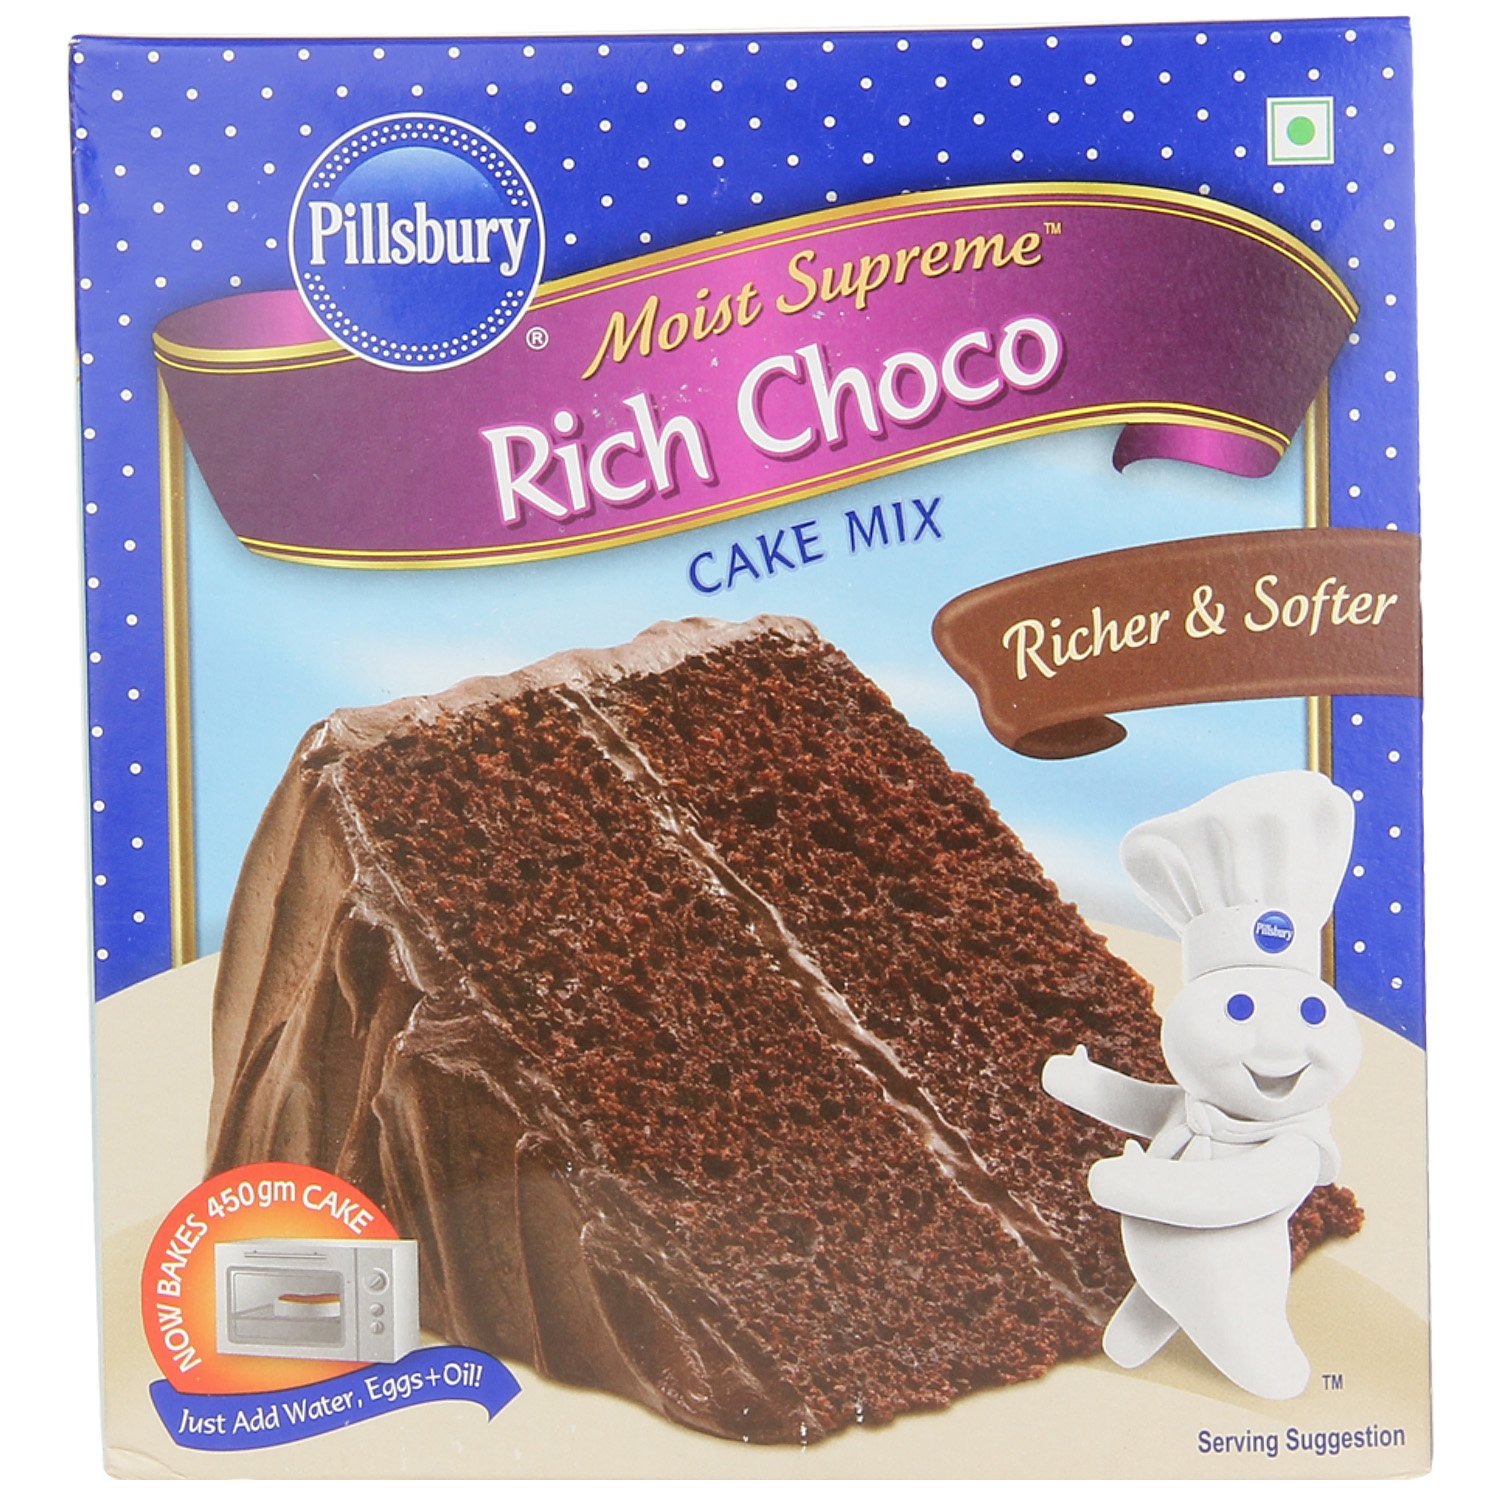 How To Make Pillsbury Cake Mix In Microwave